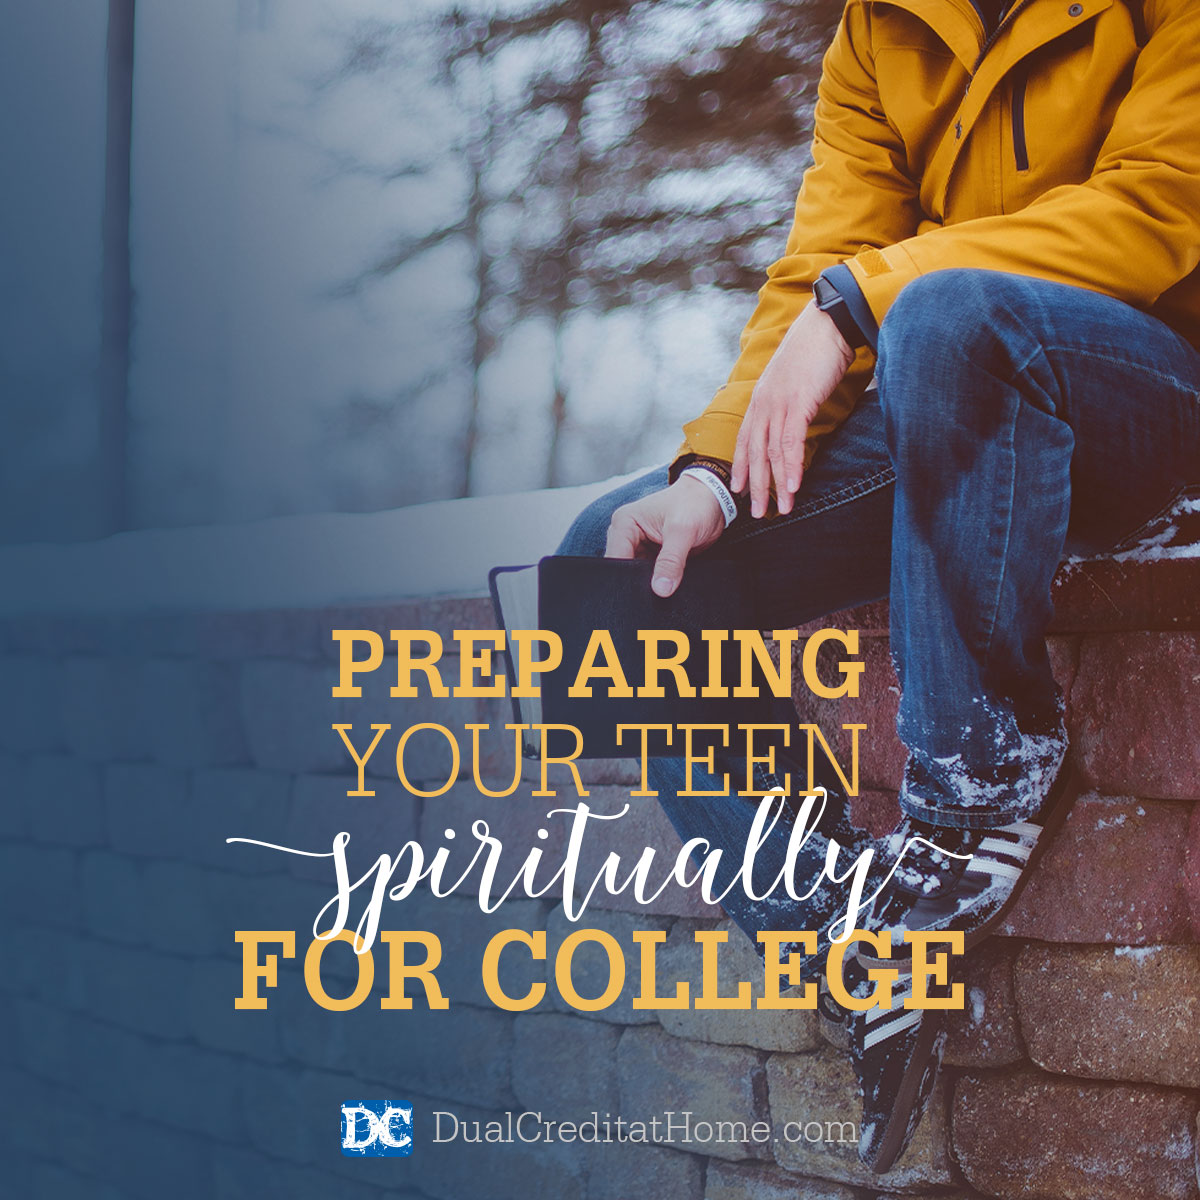 Preparing Your Teen Spiritually for College